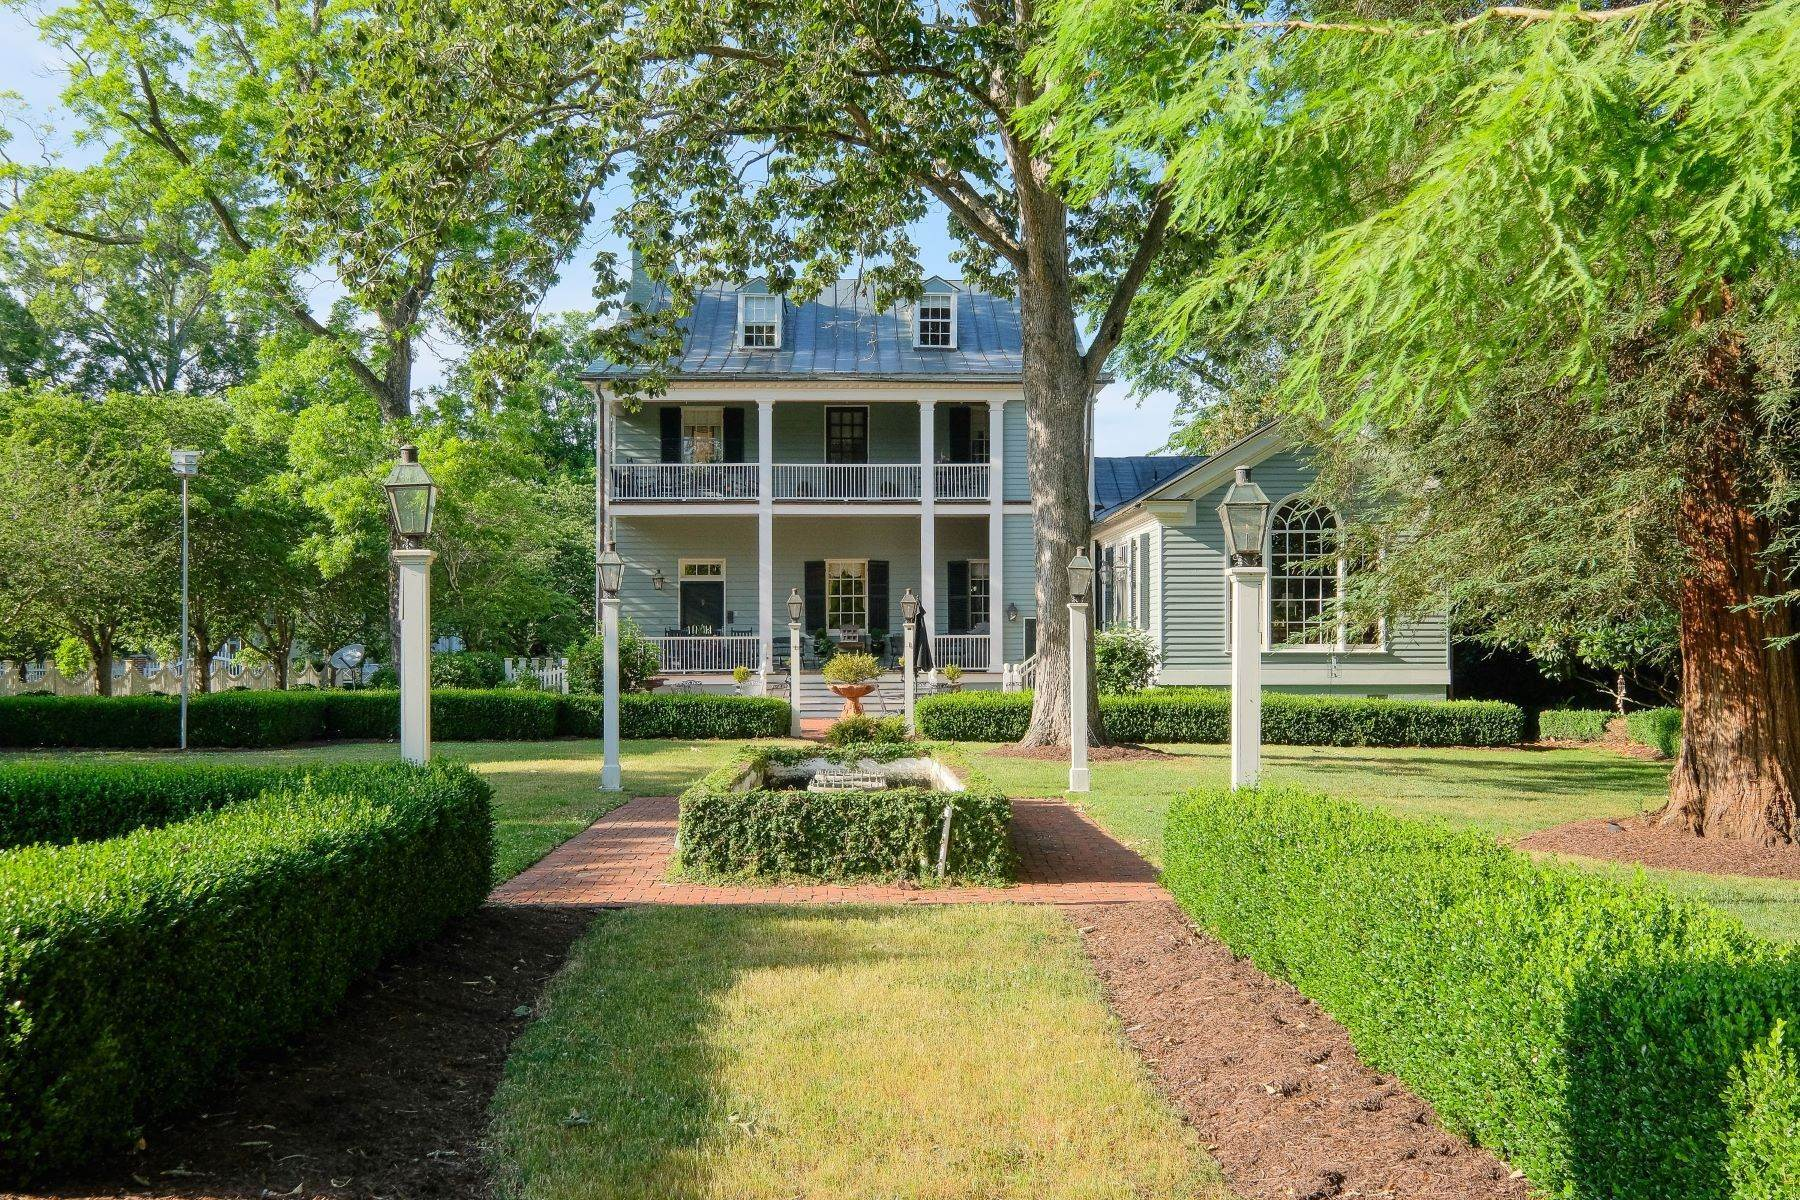 Property for Sale at The Skinner Paxton House 115 West King Street Edenton, North Carolina 27932 United States